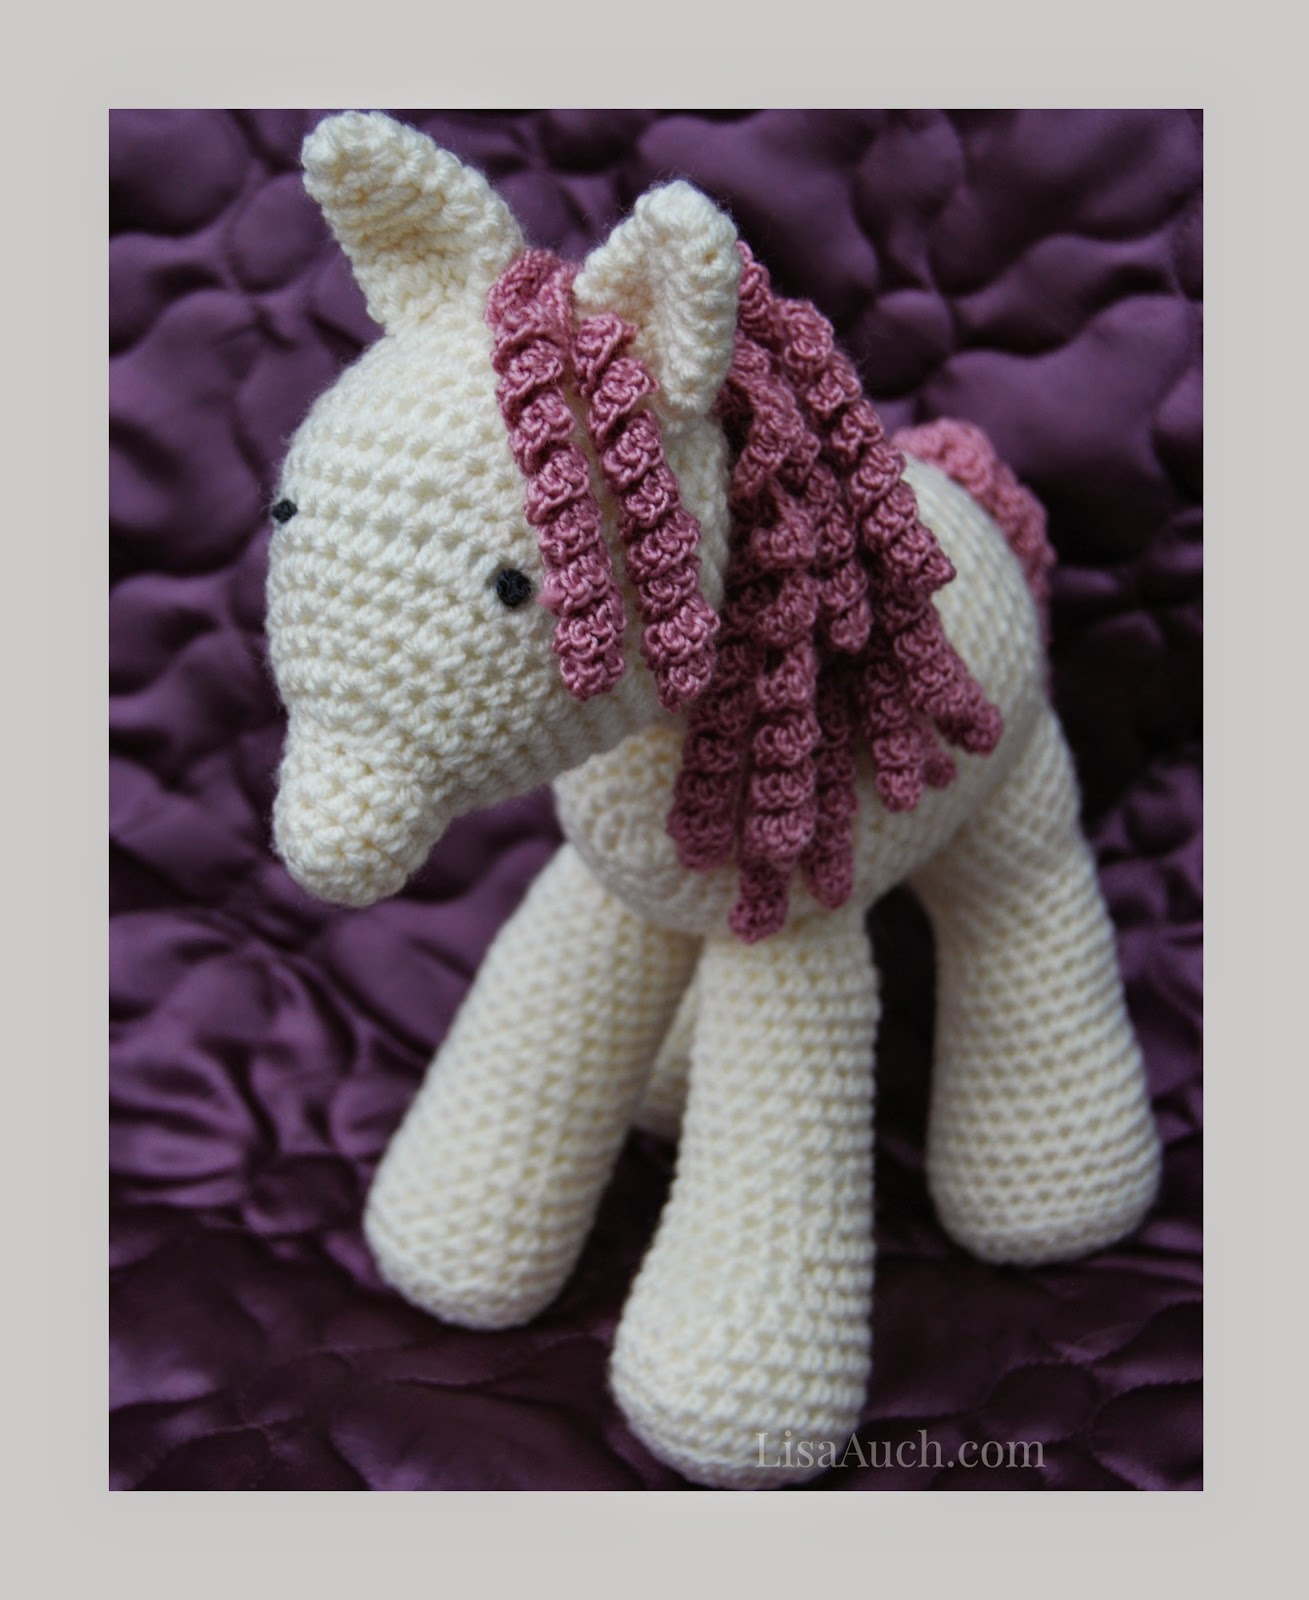 Free Crochet Patterns And Designs By Lisaauch Free Crochet Horse